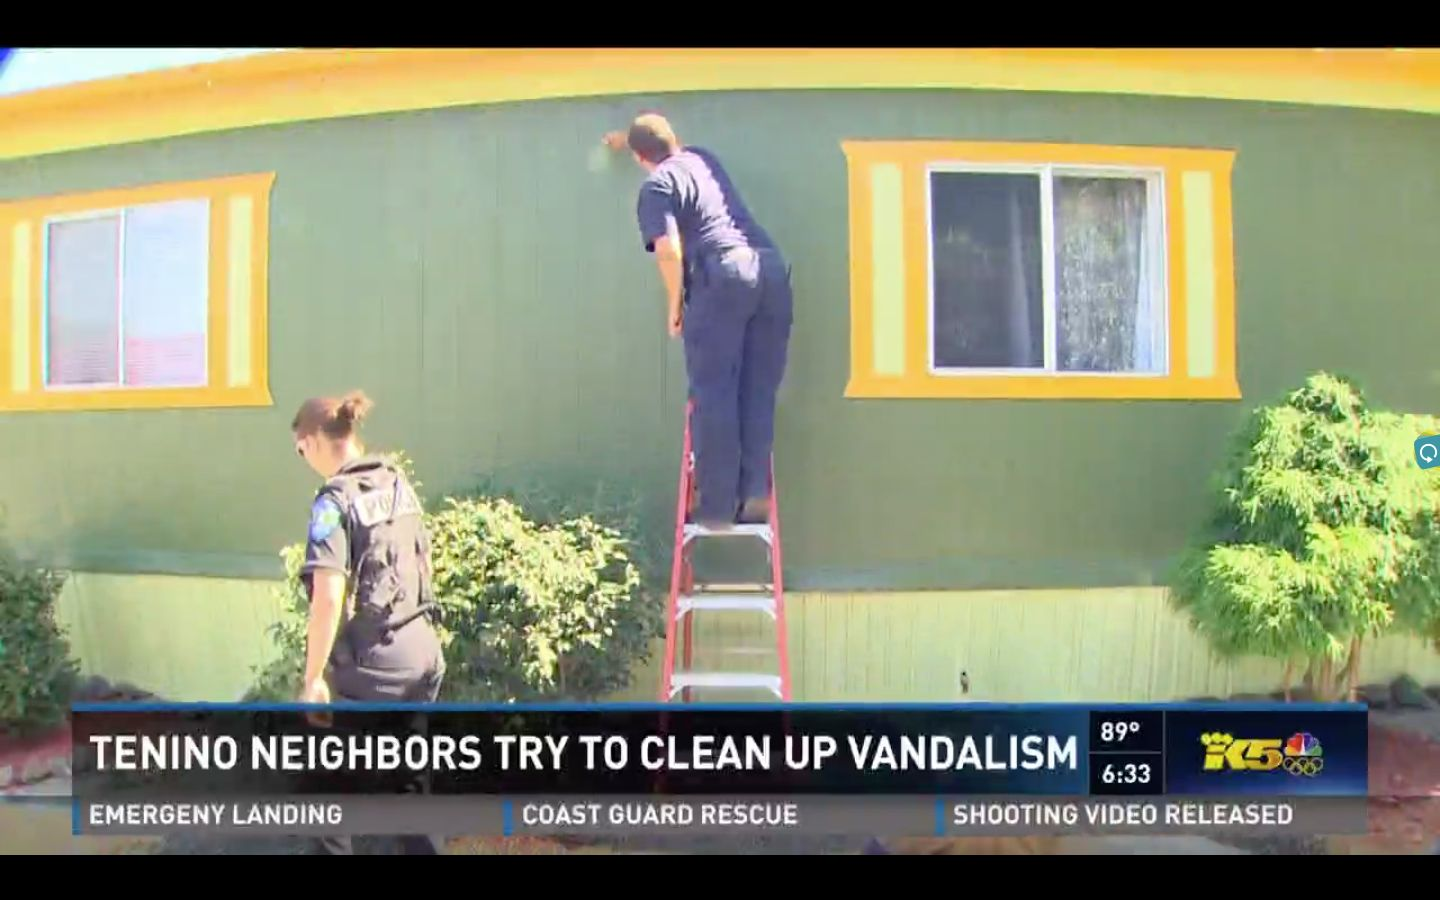 Volunteers, including a local police officer and firefighter, were seen joining in the cleaning